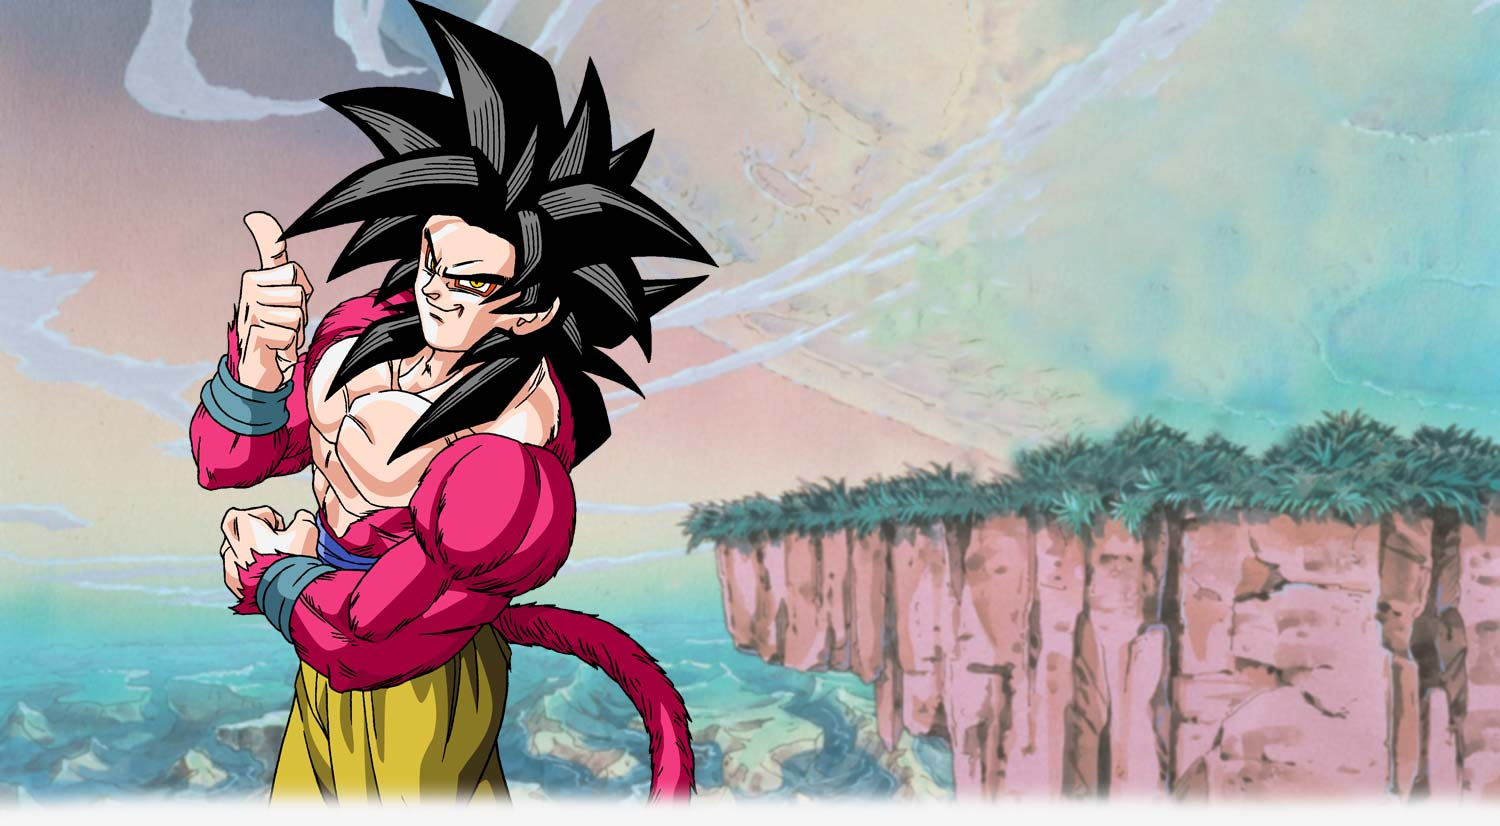 Goku Spotlight image buy the series now